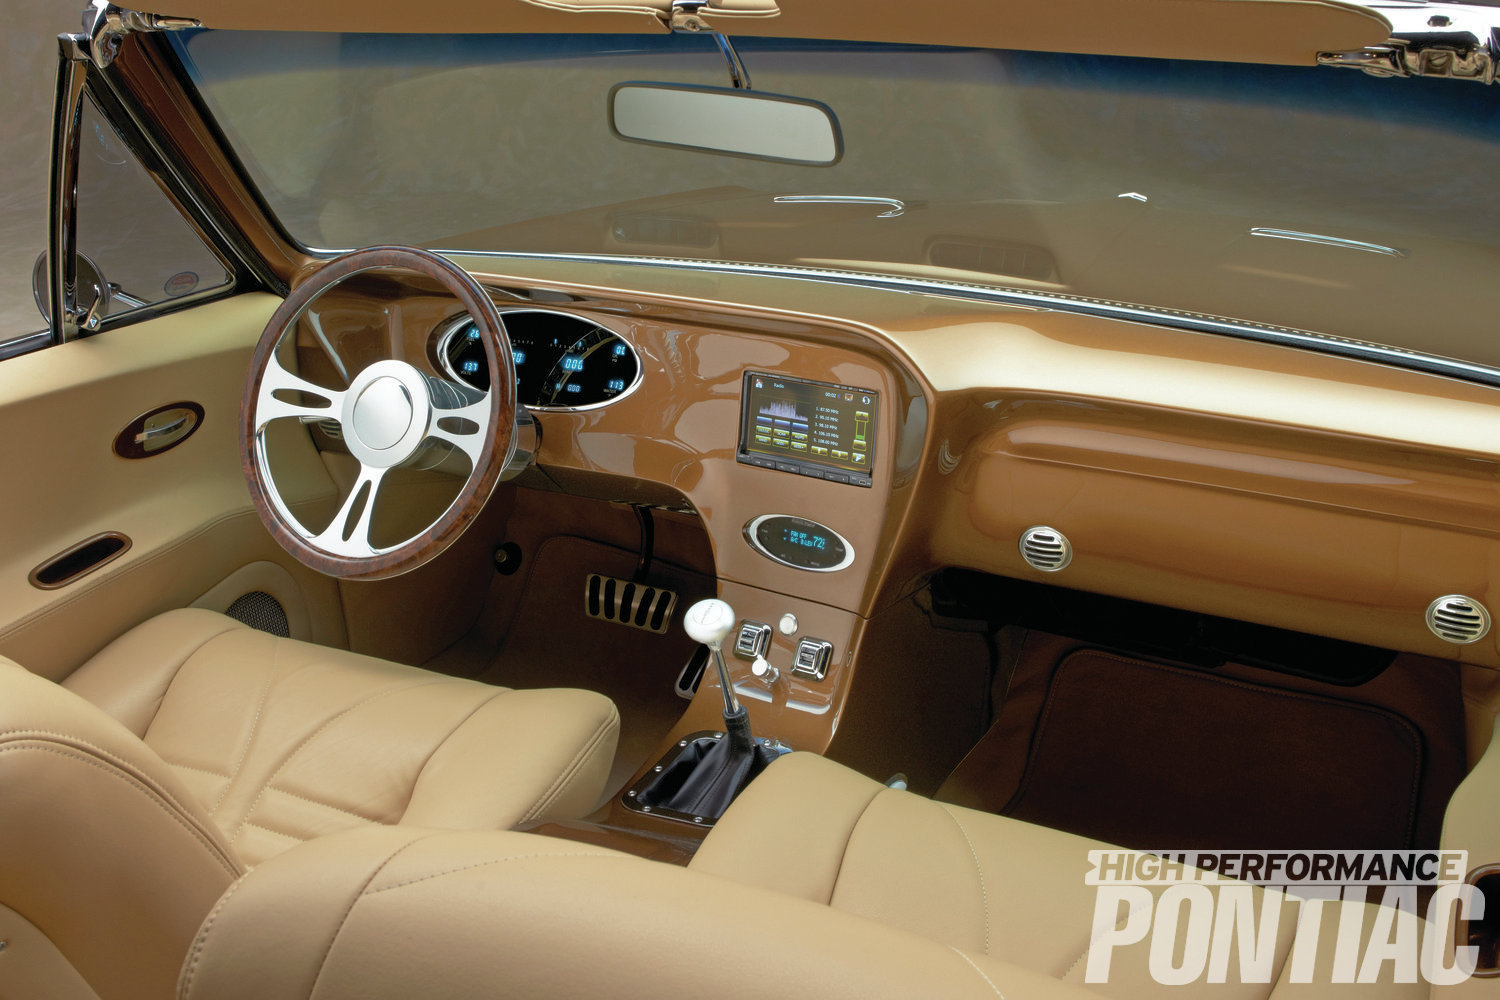 The custom dash panel is a fiberglass unit created by Run Rite Classics. Dakota Digital supplied instrumentation and a Vintage Air unit provides heating and cooling. A Fastlane steering wheel from Billet Specialties is mounted onto the company's tilting column. The in-dash Anbotek stereo uses a 7-inch screen that also functions as a GPS unit and displays the view taken by the back-up camera. The center console houses the power-window switches and pushbutton ignition.